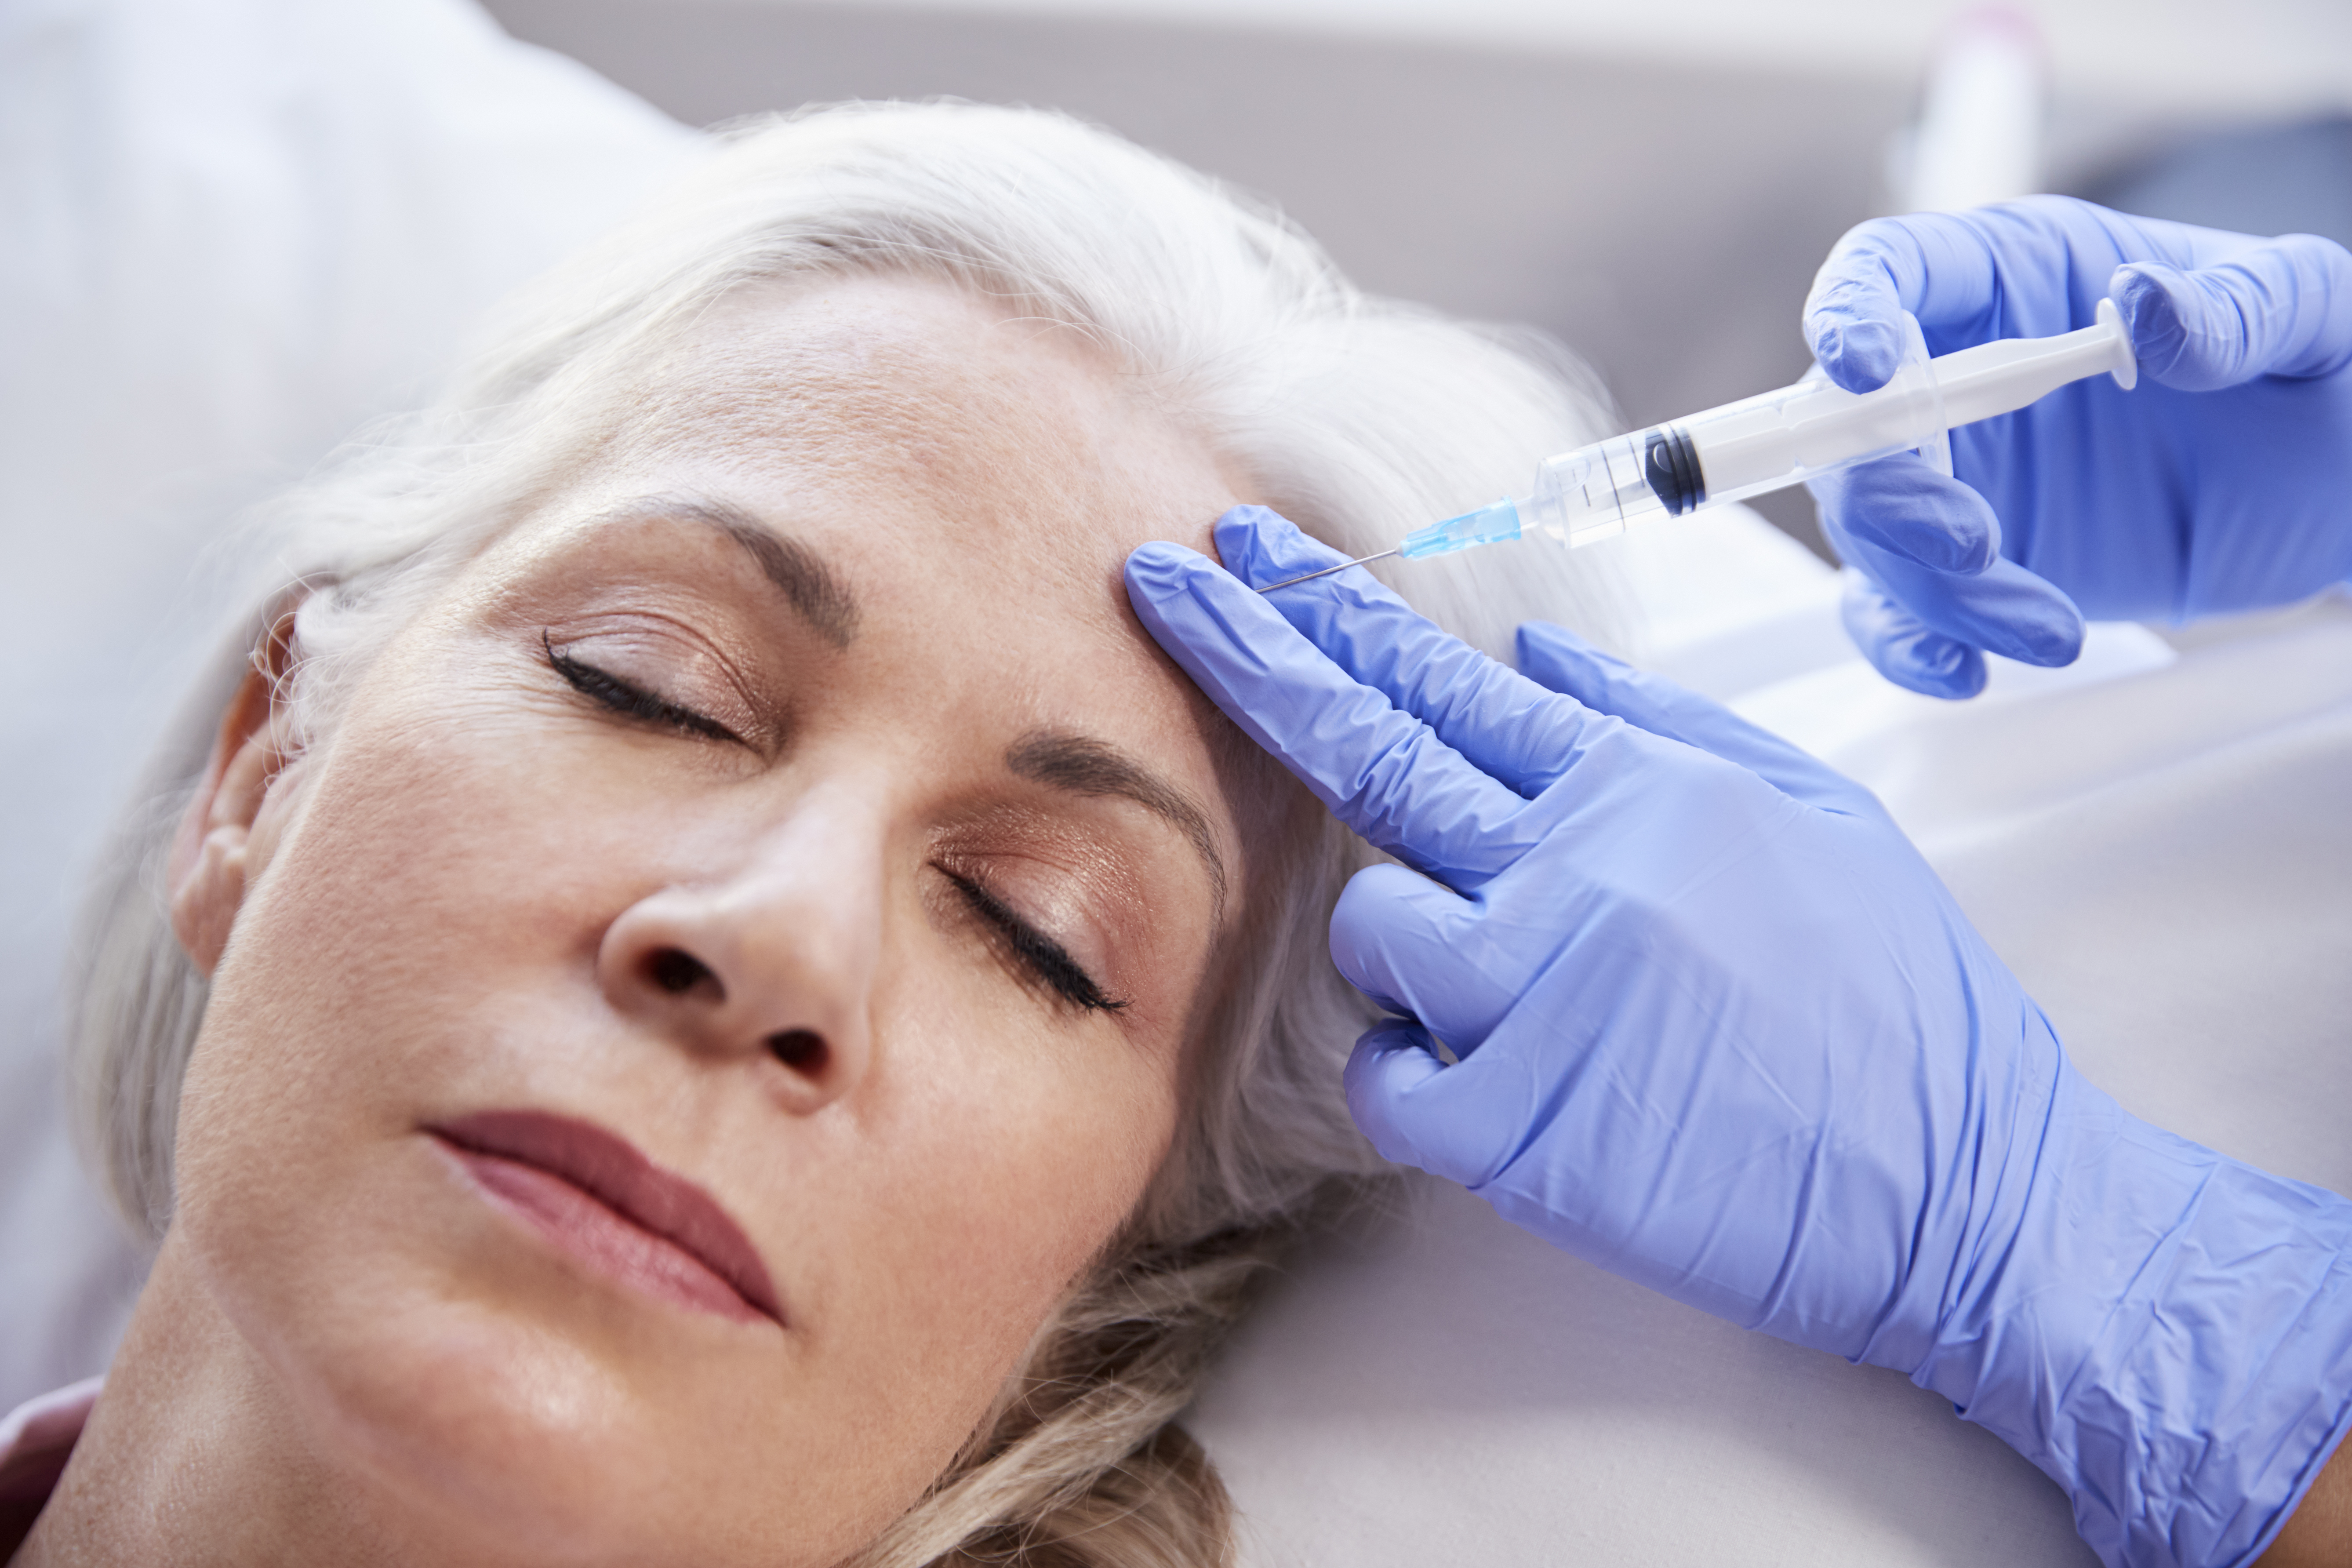 How Exactly Does Botox Work?